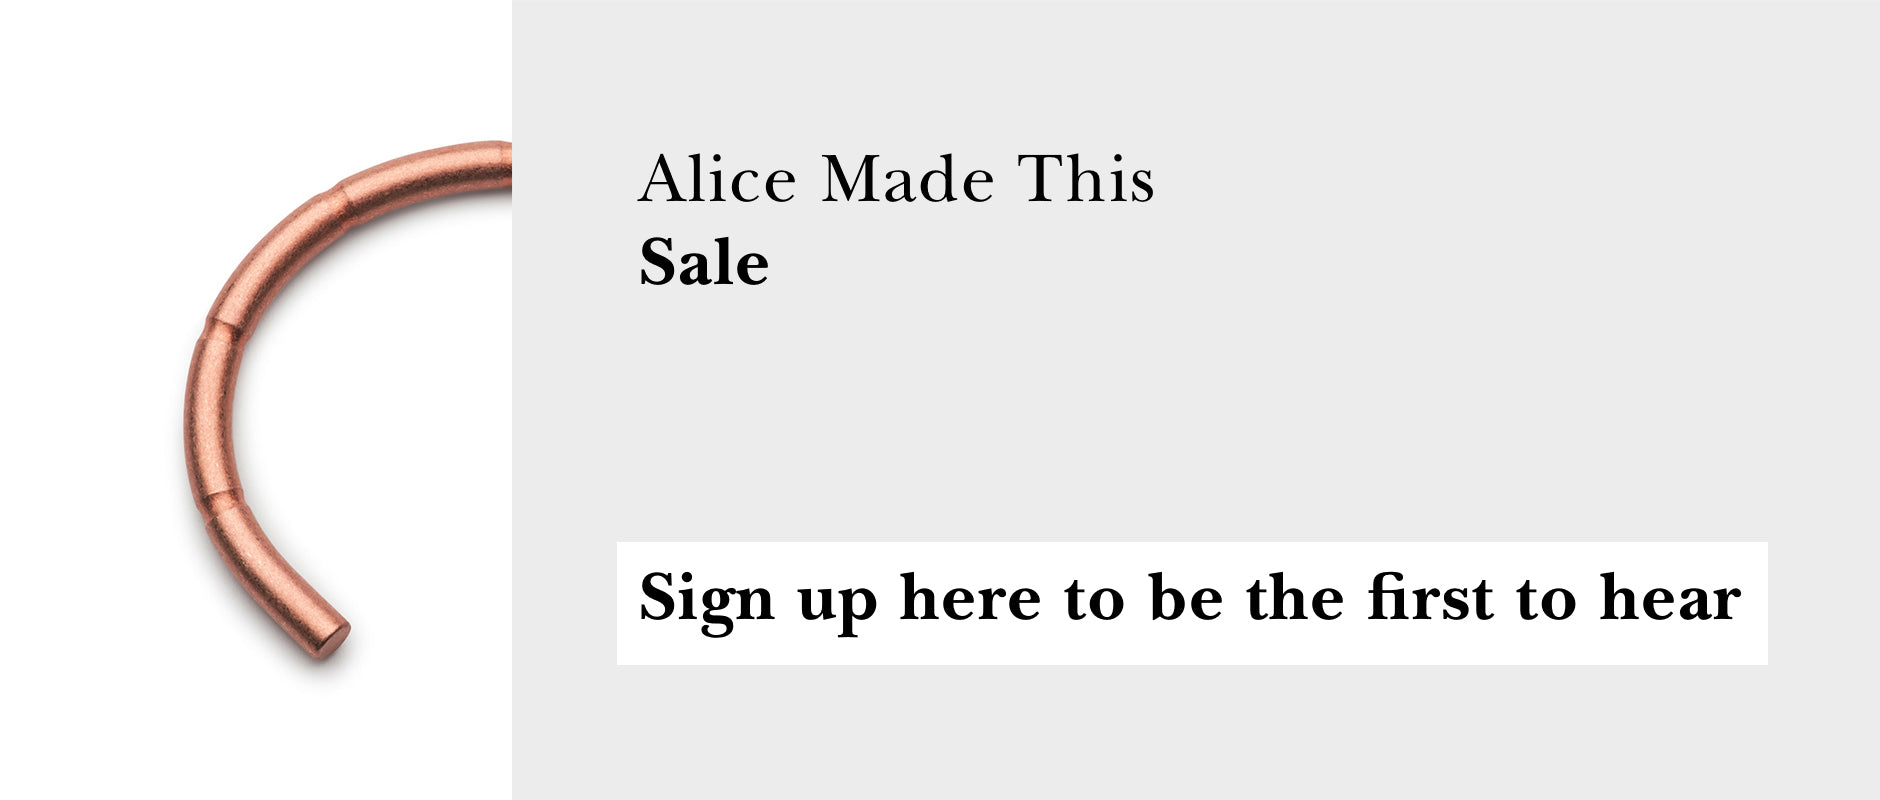 Alice Made This sale